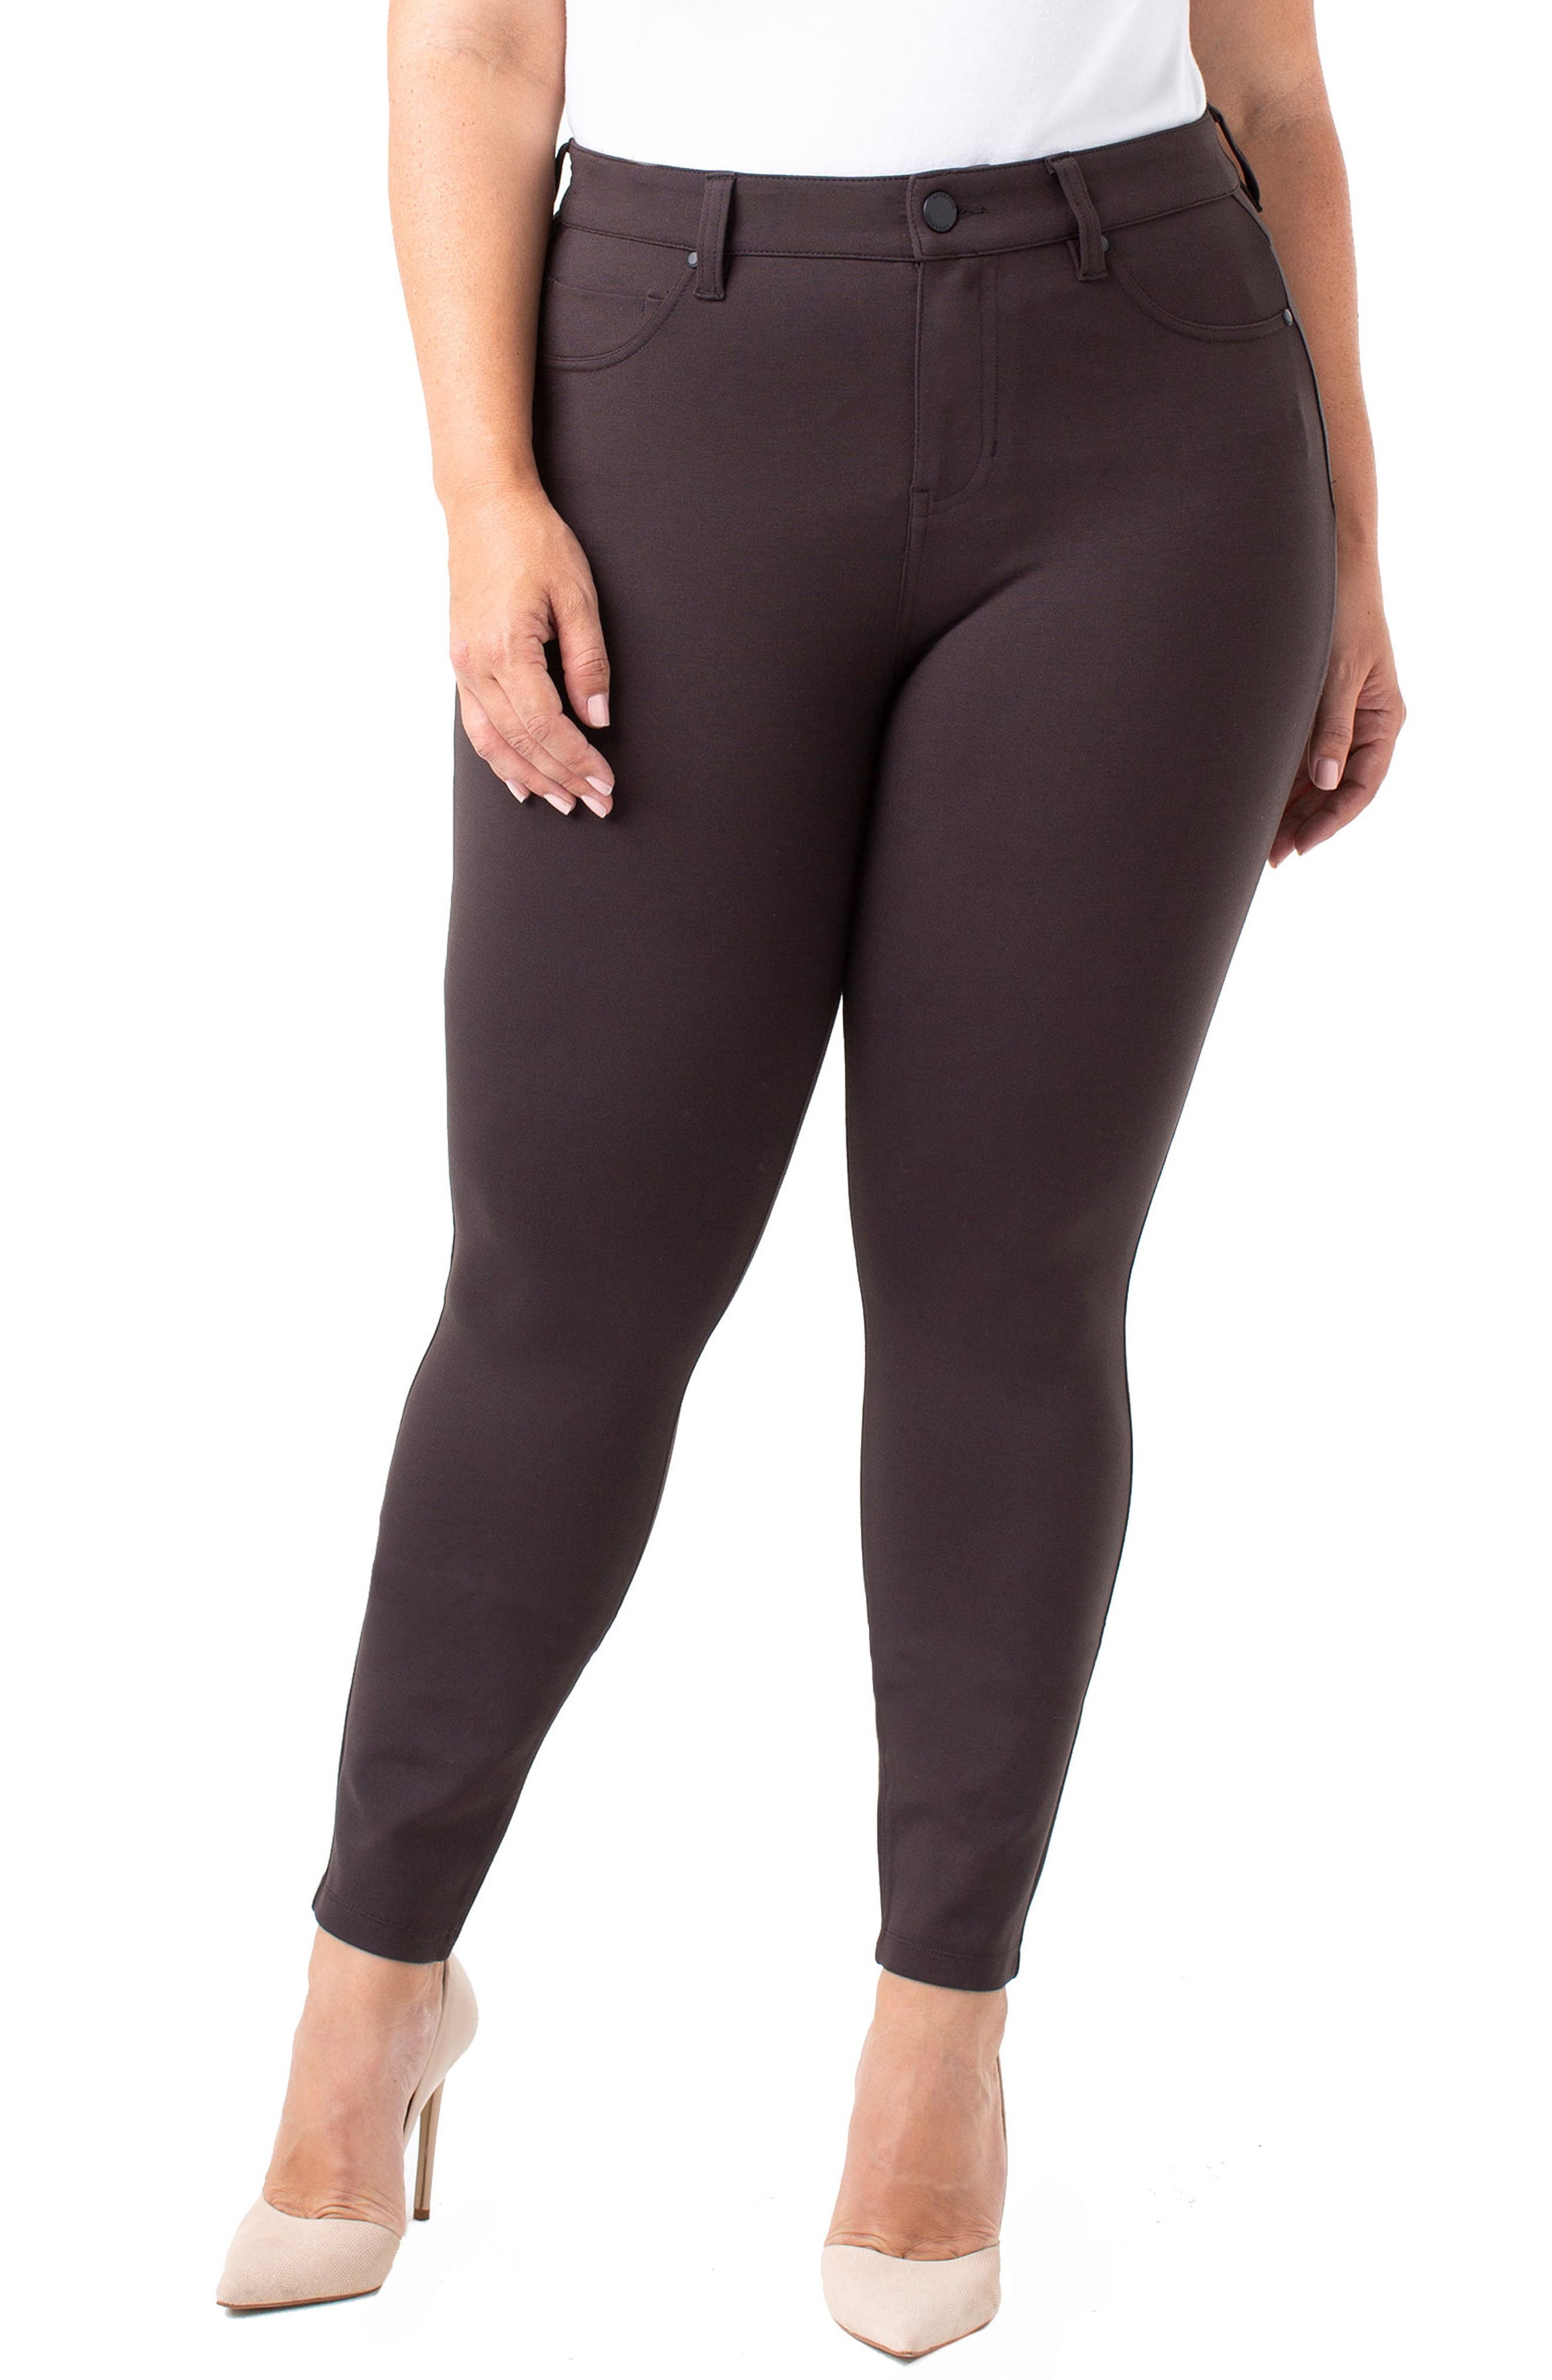 Plus Size Liverpool Madonna Leggings, Brown